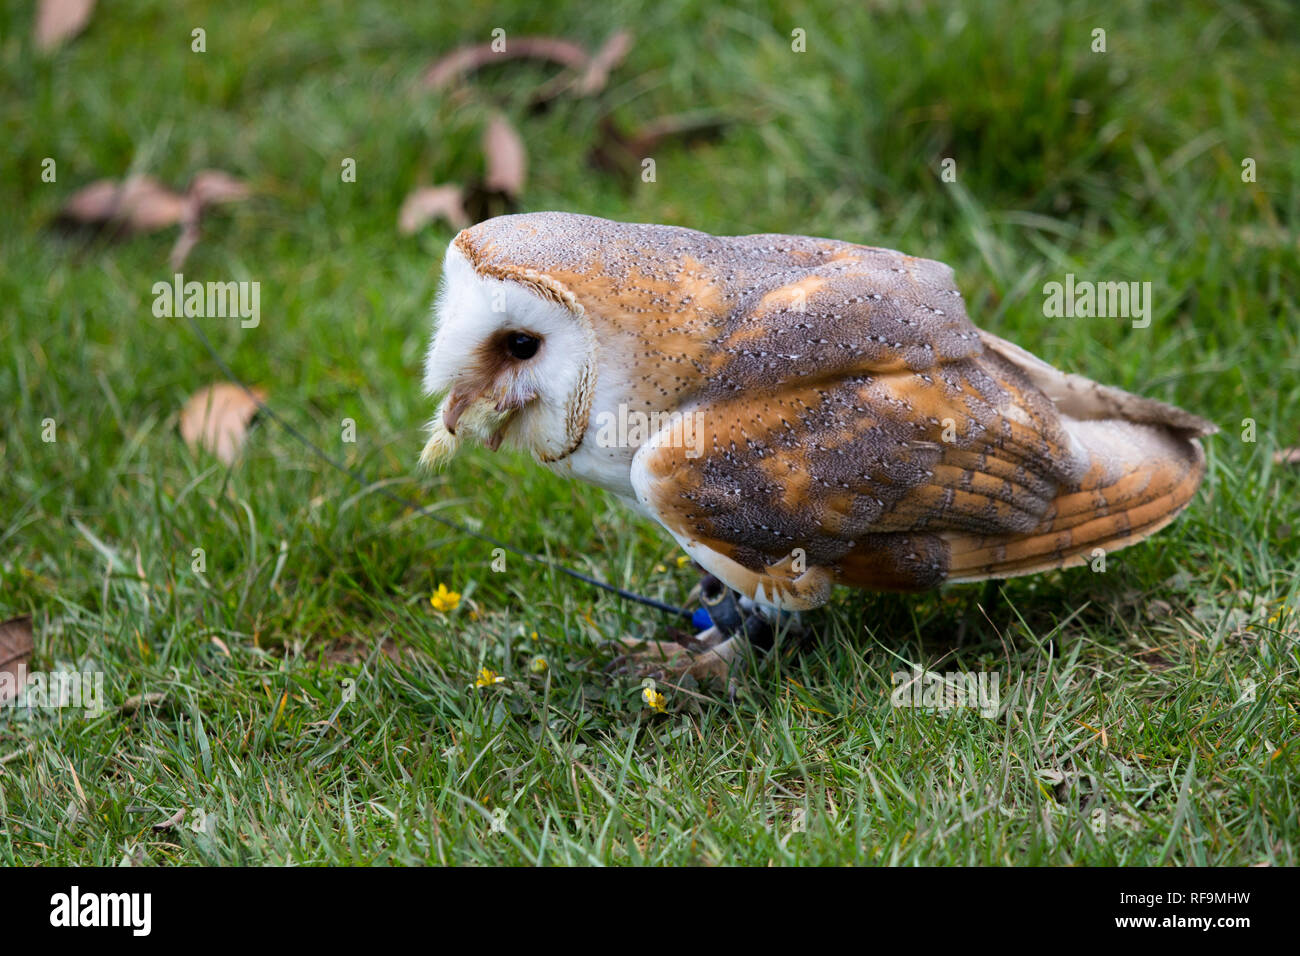 A captive Barn Owl stands on the Grass - Stock Image